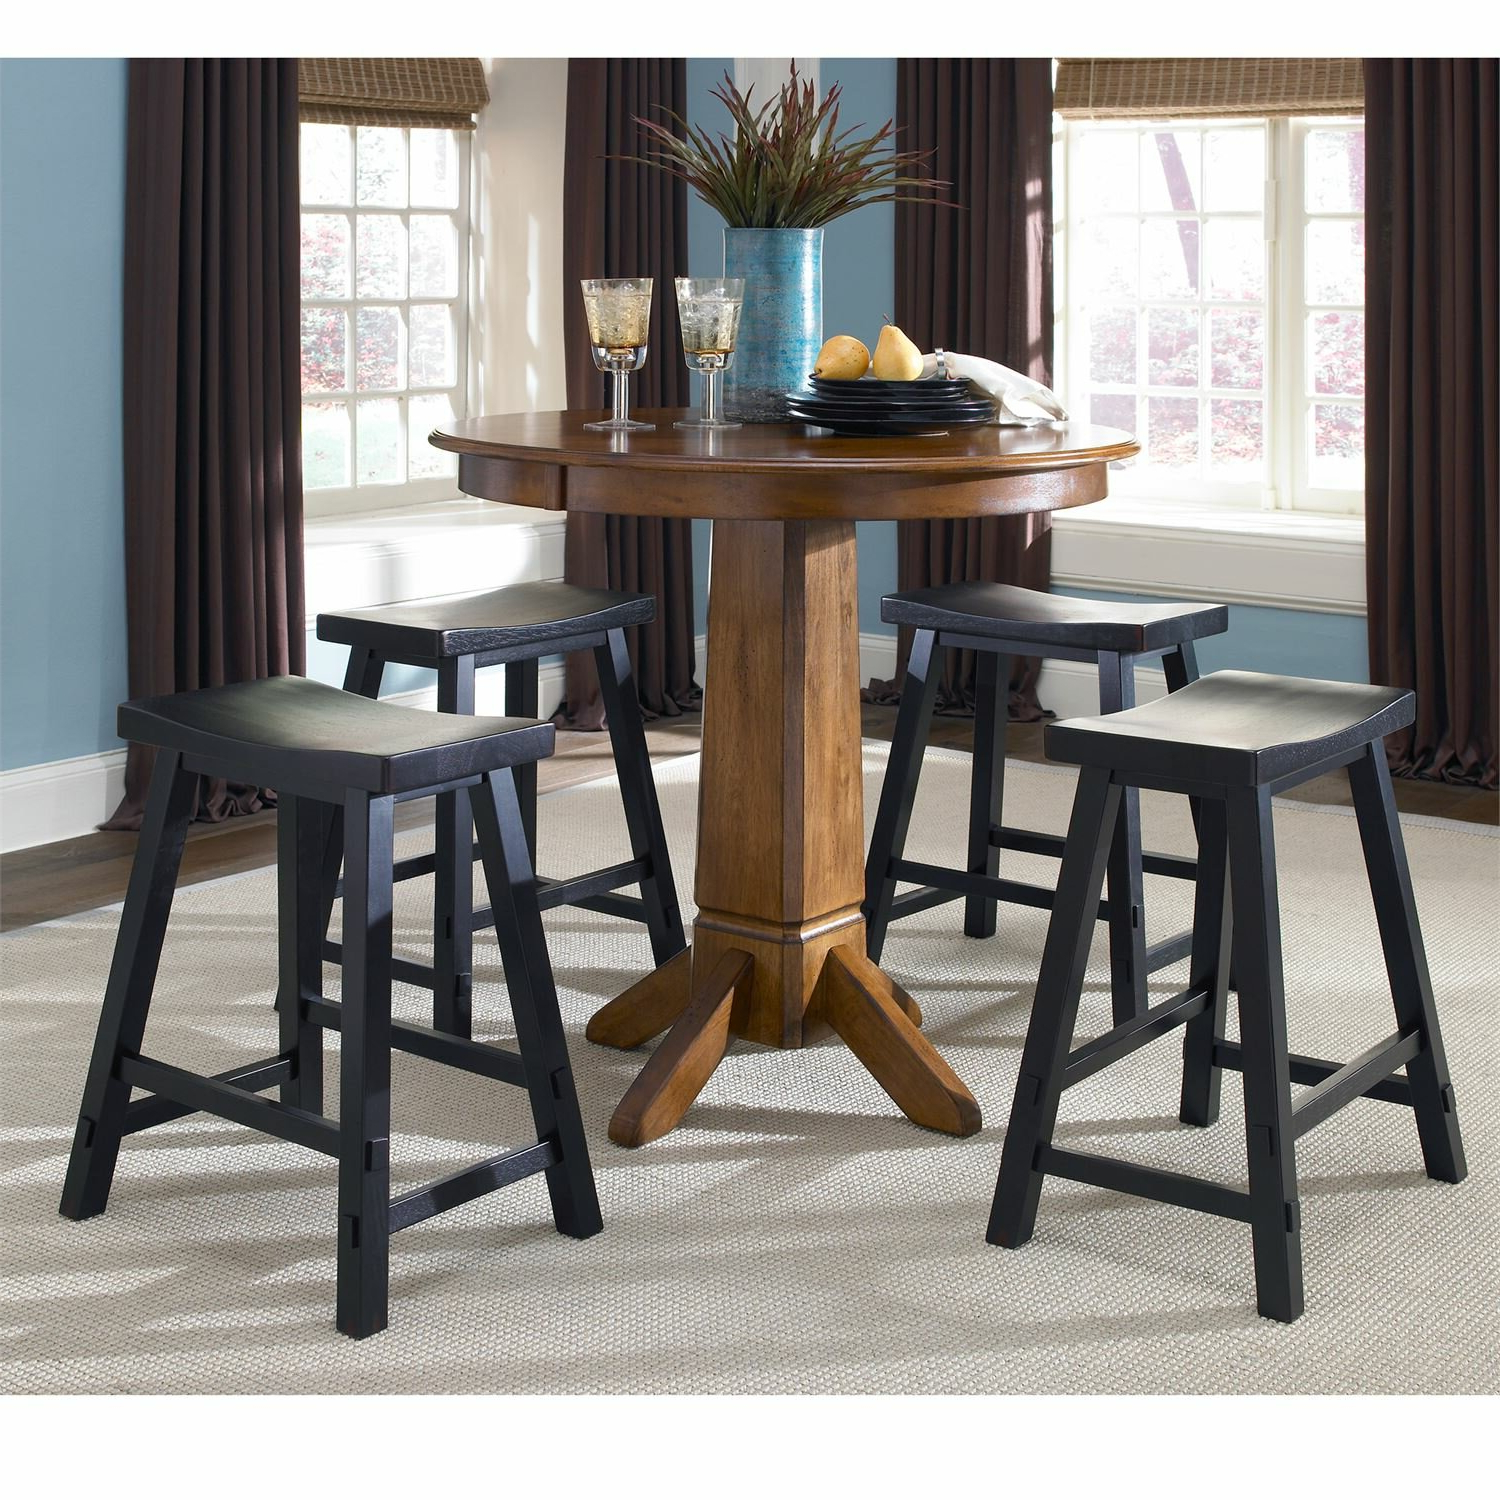 Wayfair Within Winsted 4 Piece Counter Height Dining Sets (View 24 of 25)